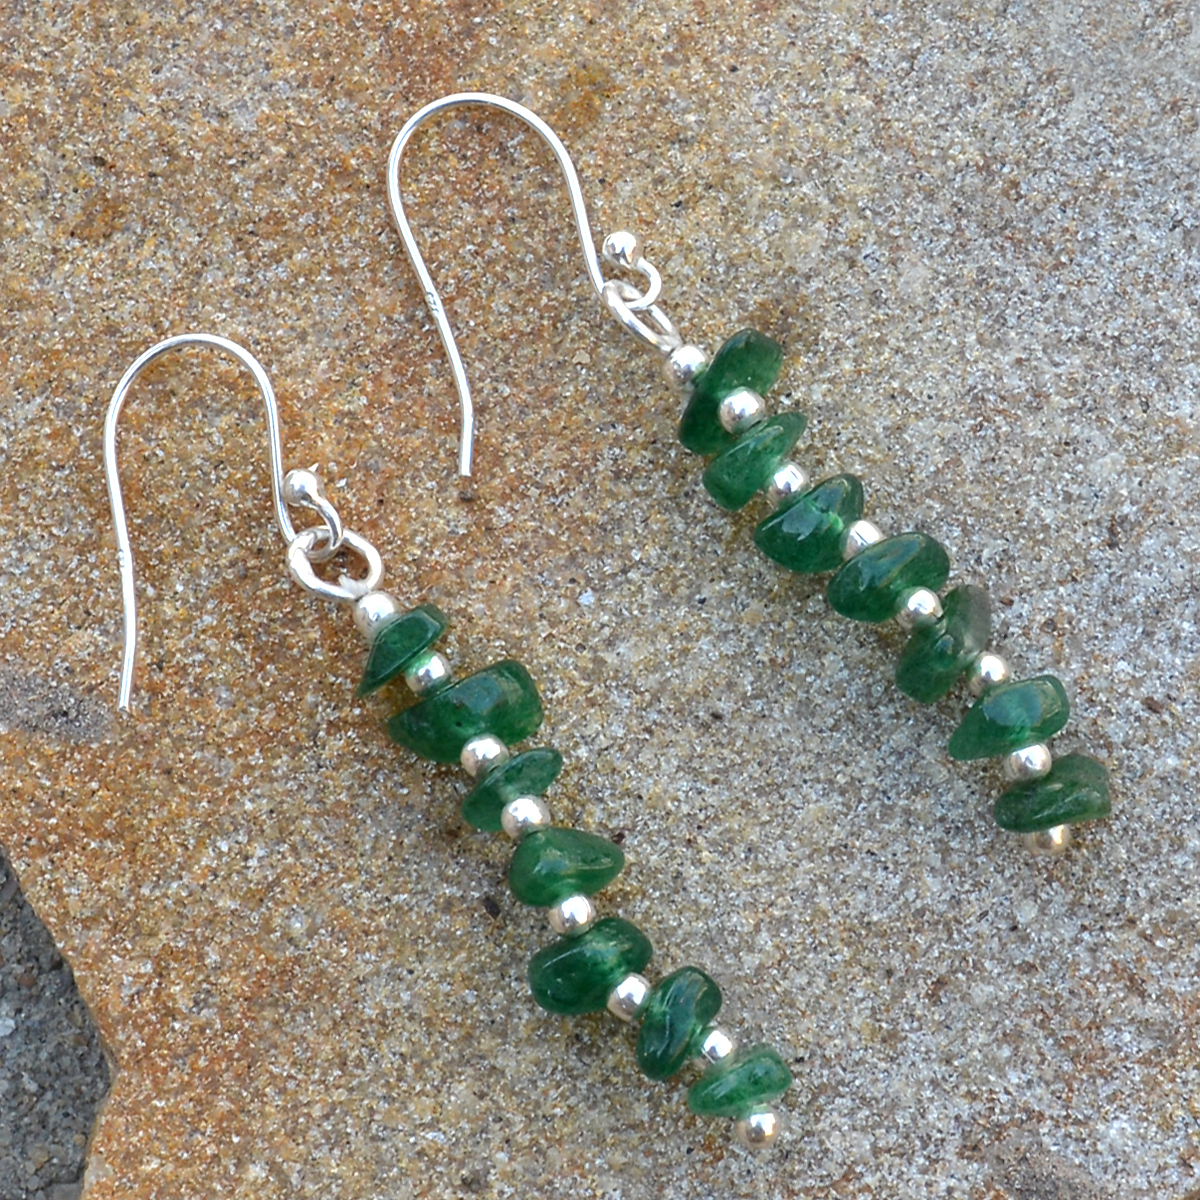 Green Aventurine Gemstone Handmade Jewelry Manufacturer 925 Sterling Silver  Jaipur Rajasthan India Dangle Fish Hook Earring